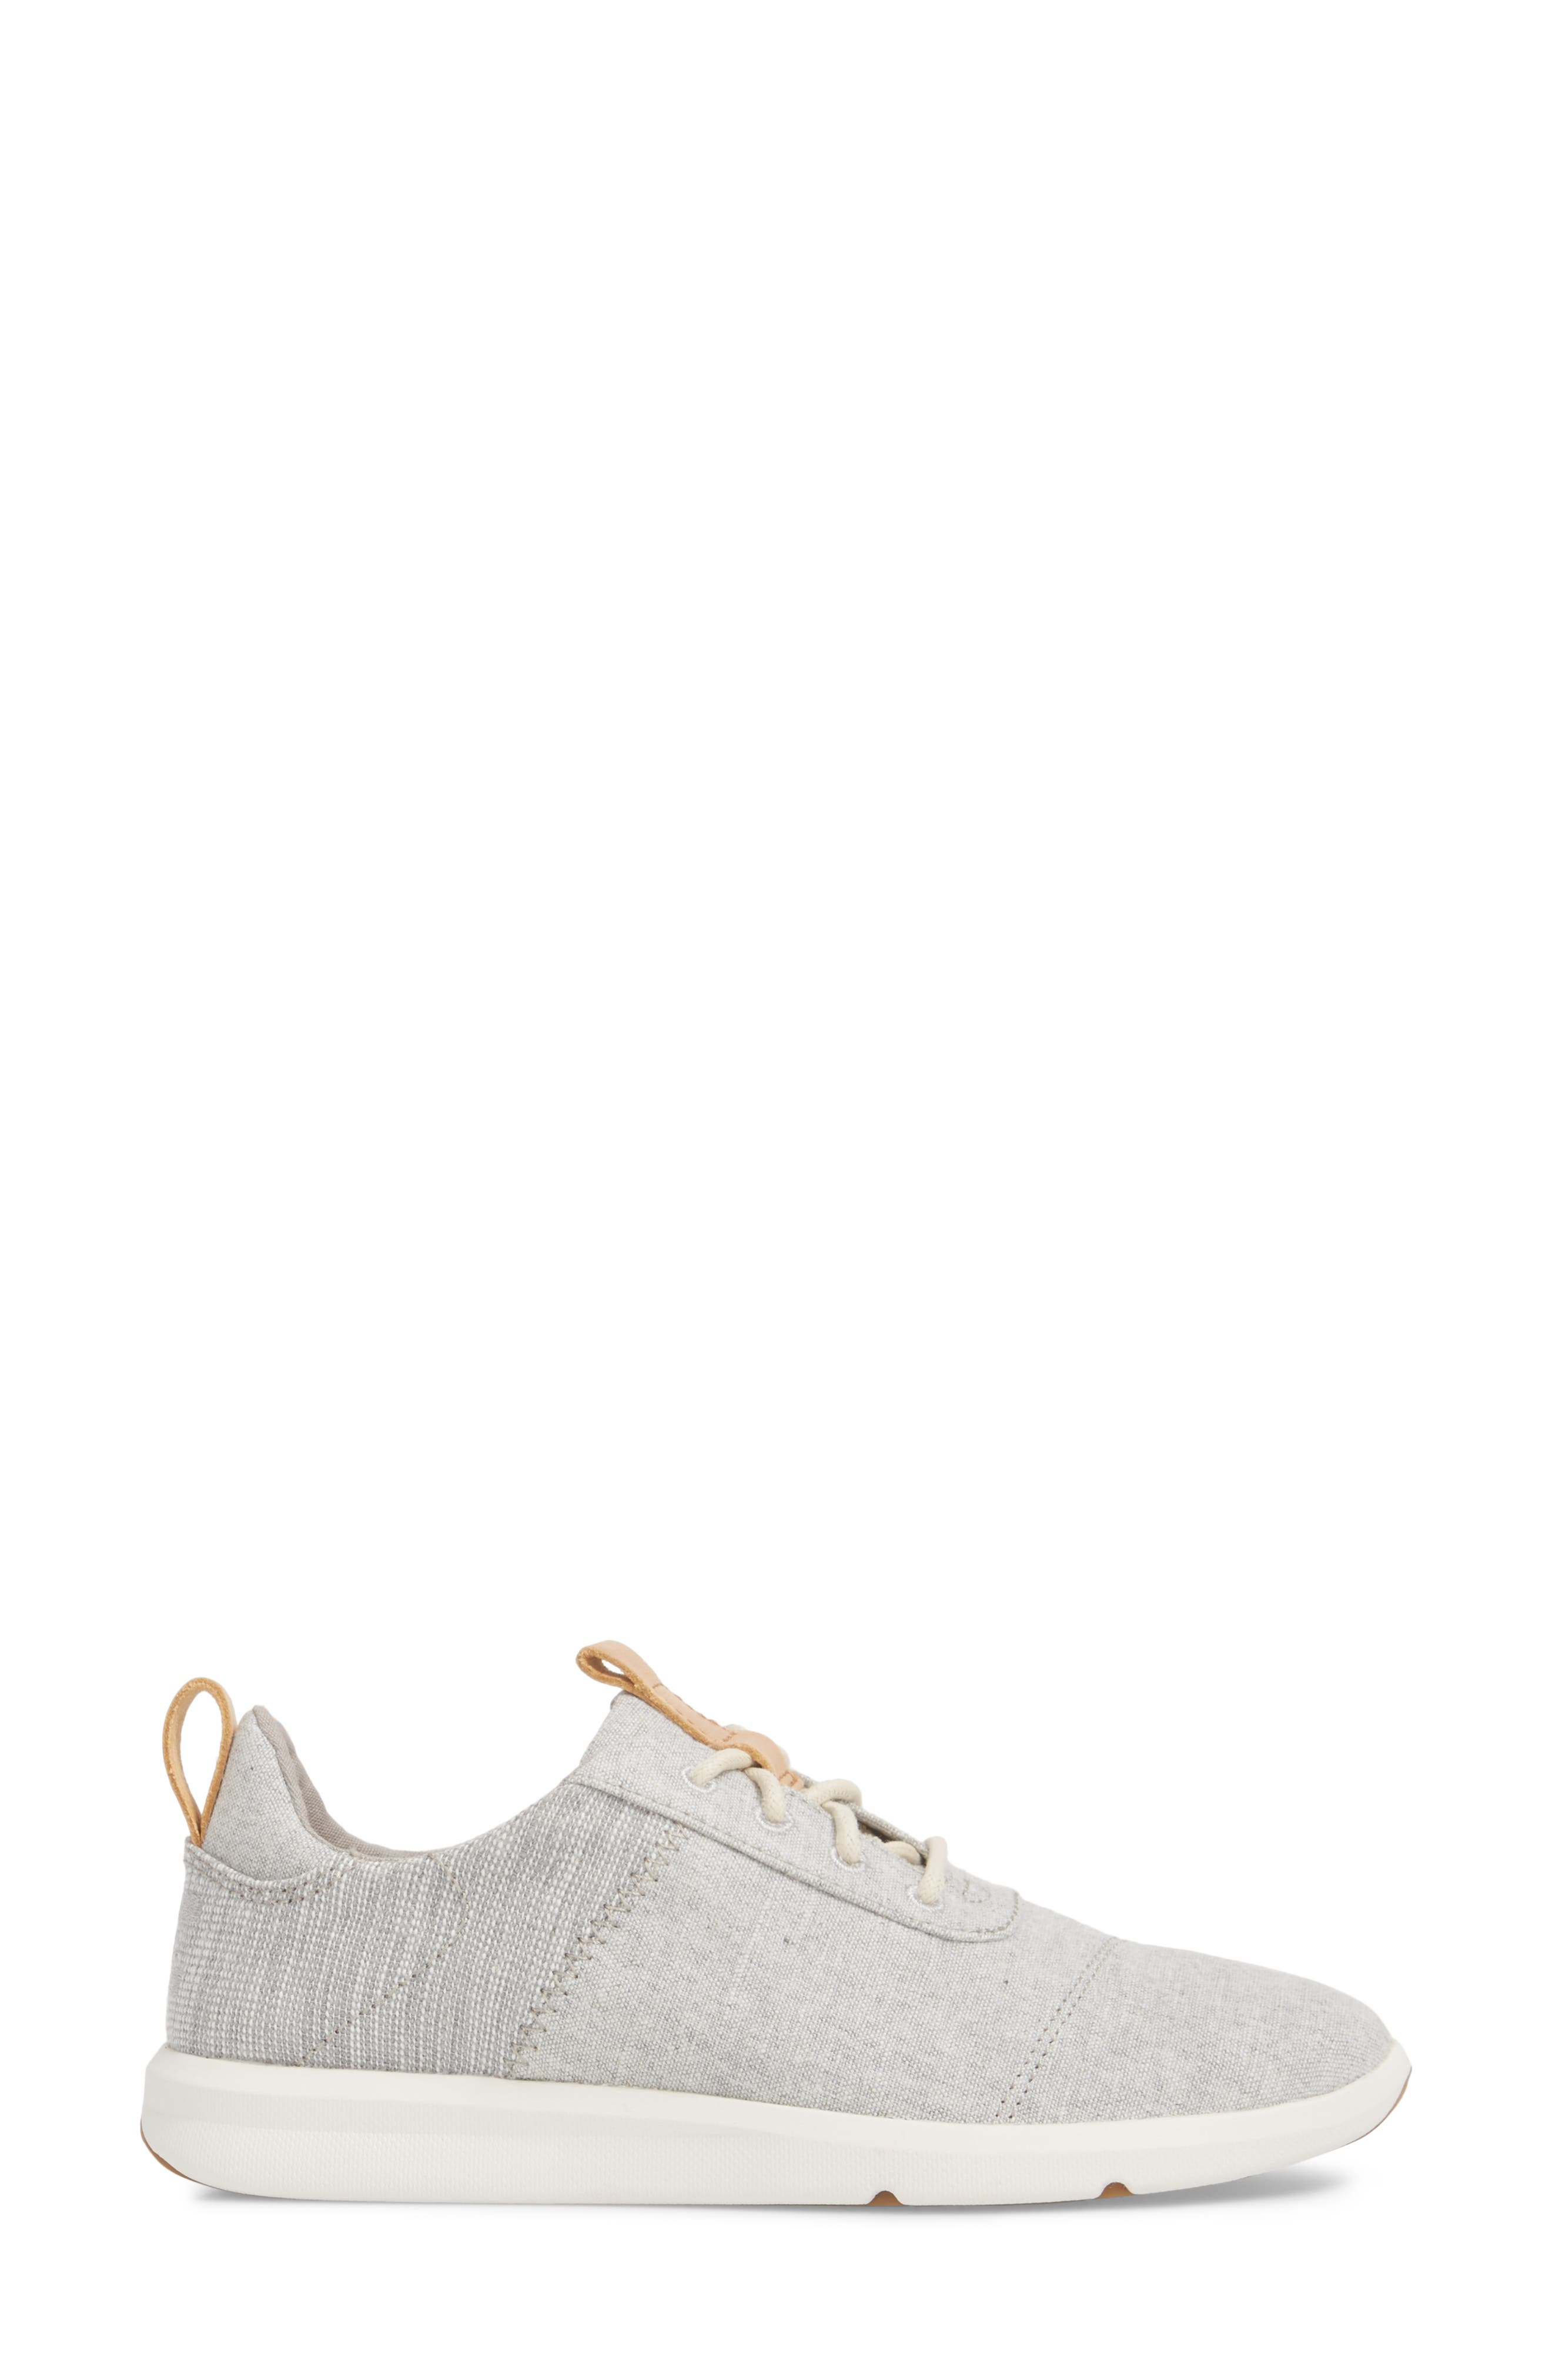 Cabrillo Sneaker,                             Alternate thumbnail 3, color,                             Drizzle Grey Chambray Mix